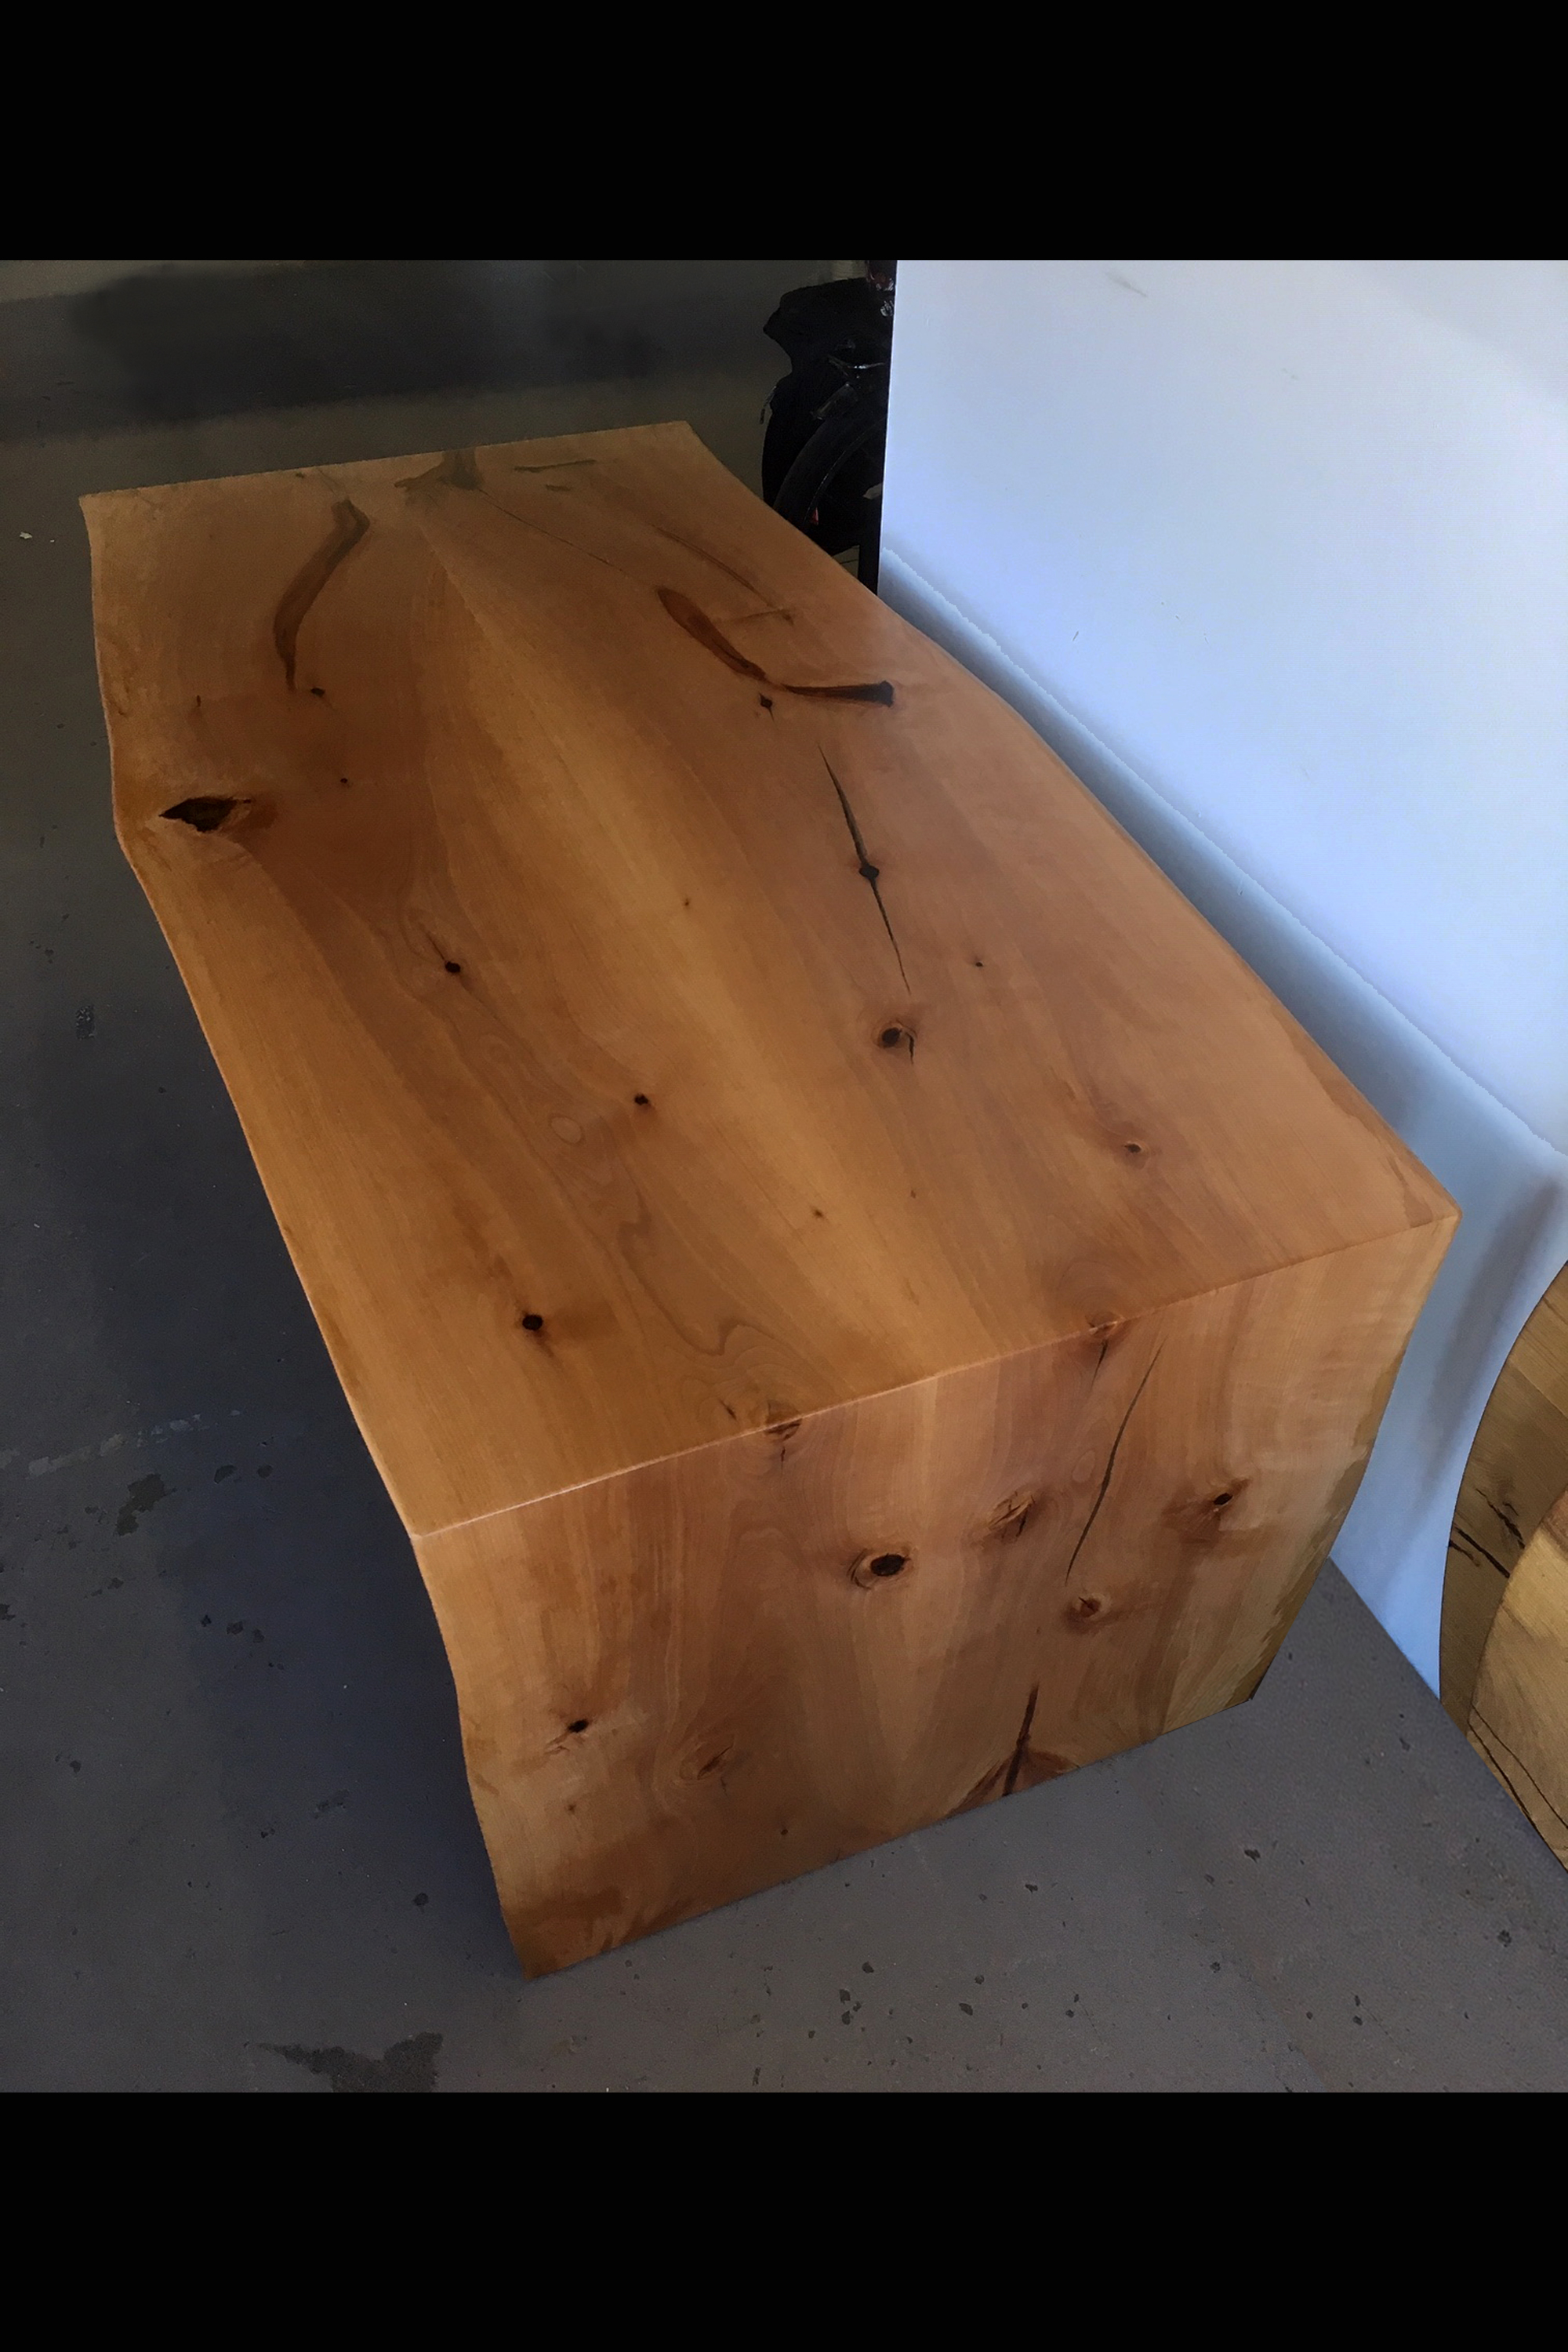 "FA-20 - ARBUTUS (MADRONE)34-38-34"" W X 72"" L X 28-1/2"" HBOOK-MATCH PAIRLIVE EDGESINGLE WATERFALL LEGS CLEAR OIL FINISHOSMO POLY-X MATTE$7,610.00 CAD"